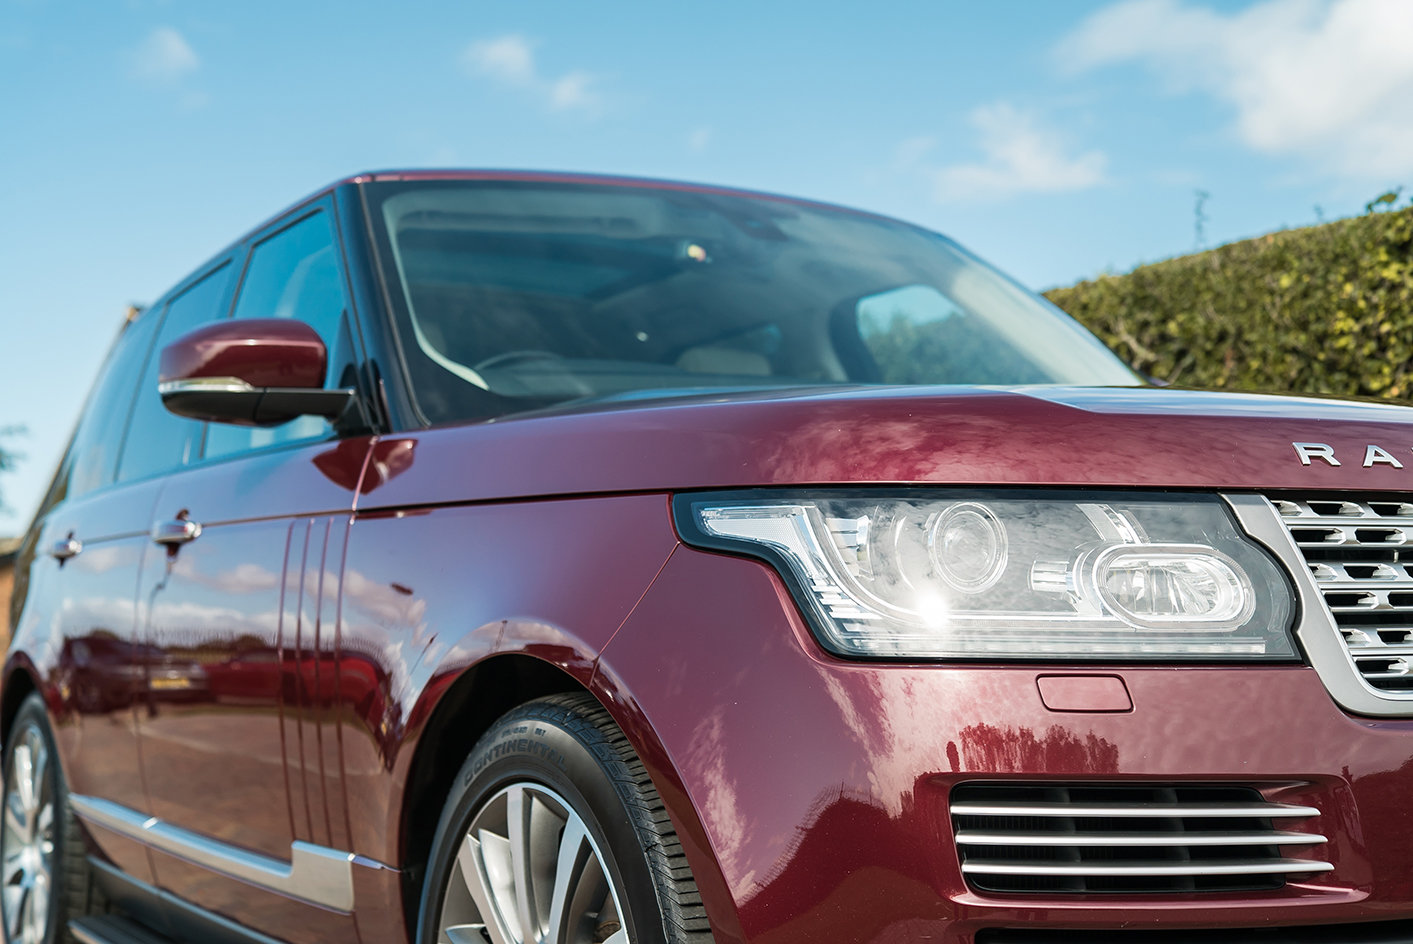 2016 Range Rover 3.0 TD Vogue SE Auto For Sale (picture 6 of 6)